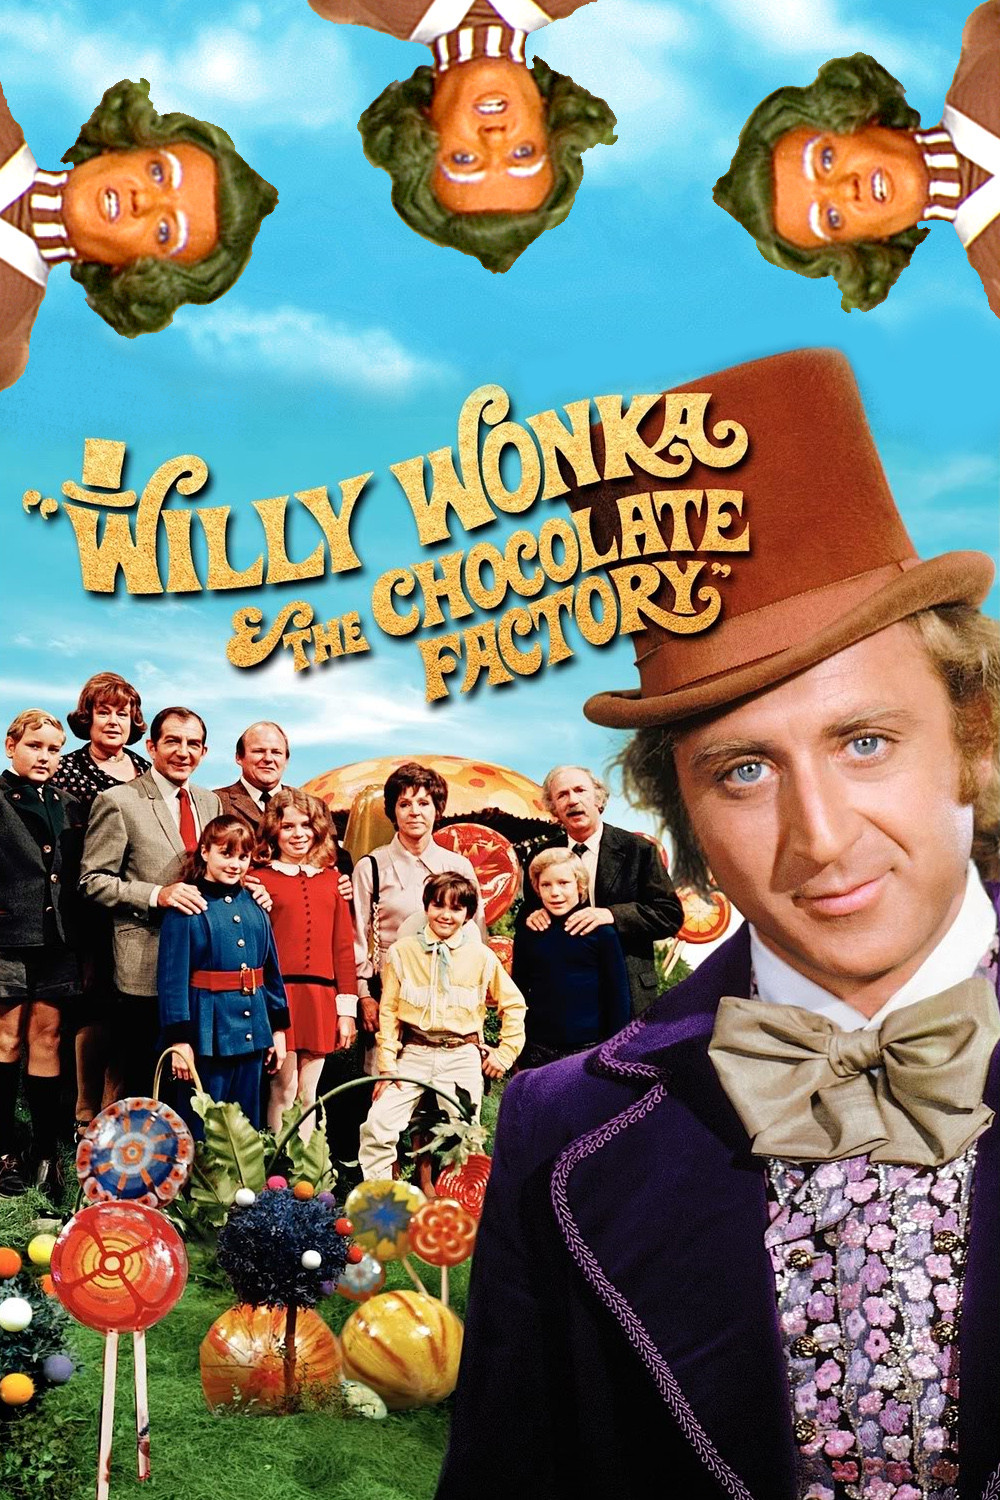 Amazoncom charlie and the chocolate factory movie poster